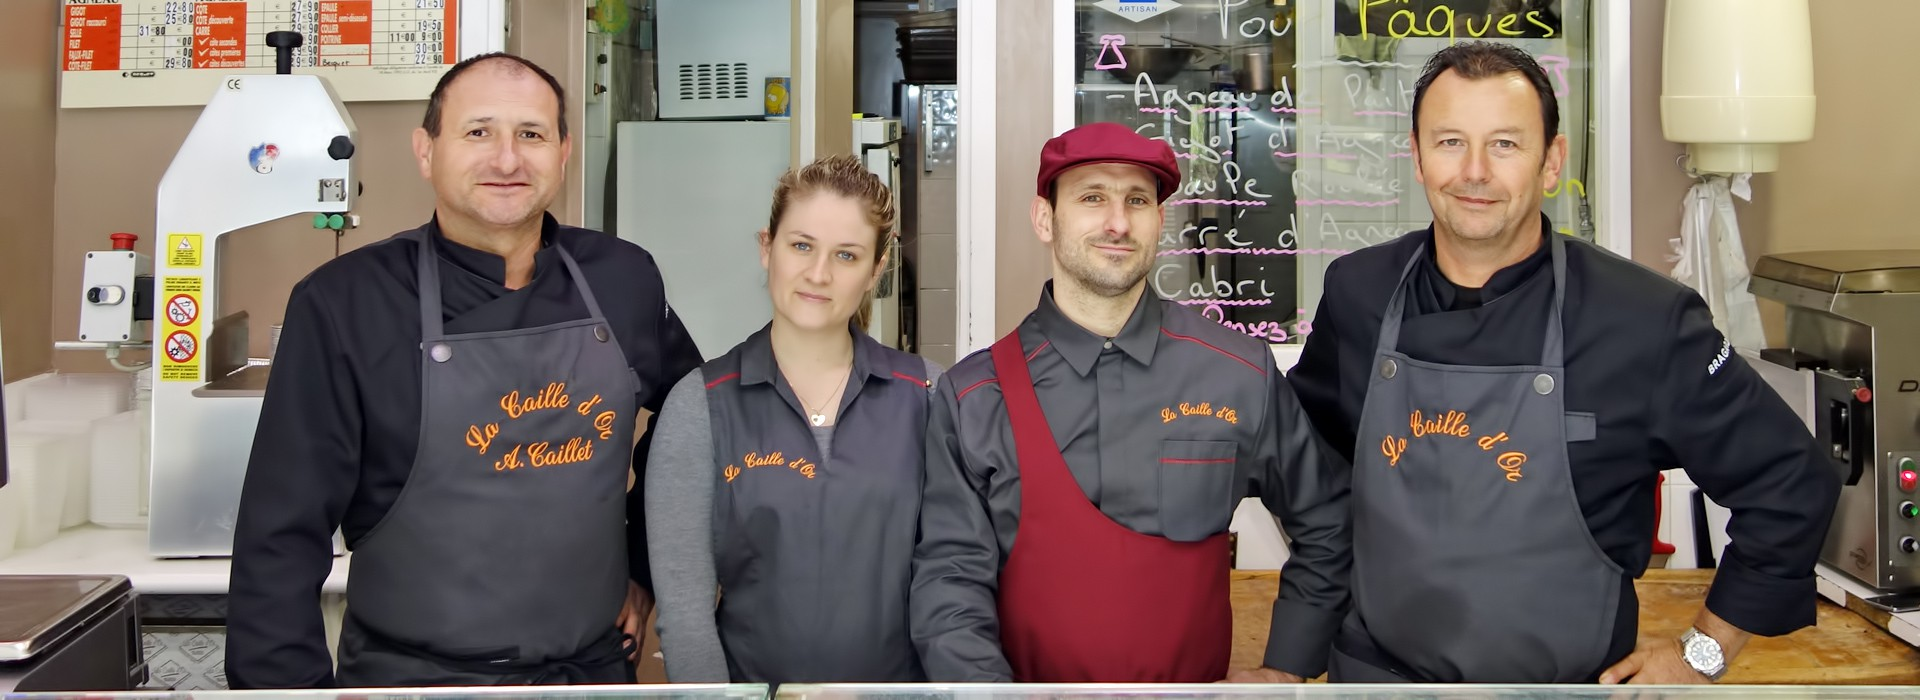 equipe-caille-dor